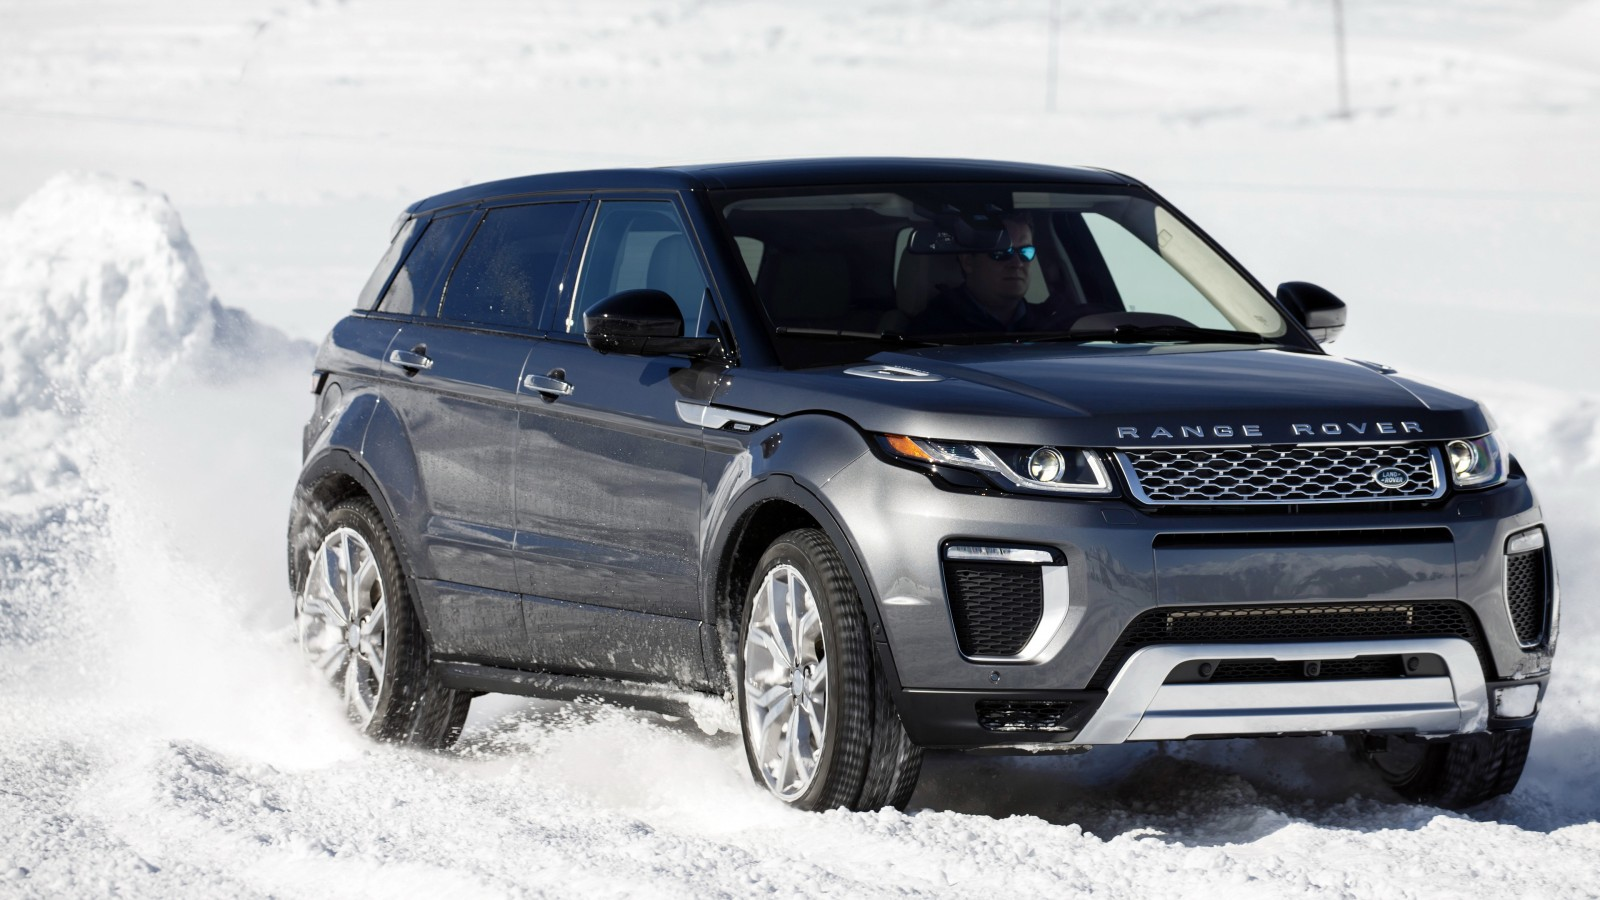 Range Rover Wallpaper For Iphone X 2016 Range Rover Evoque